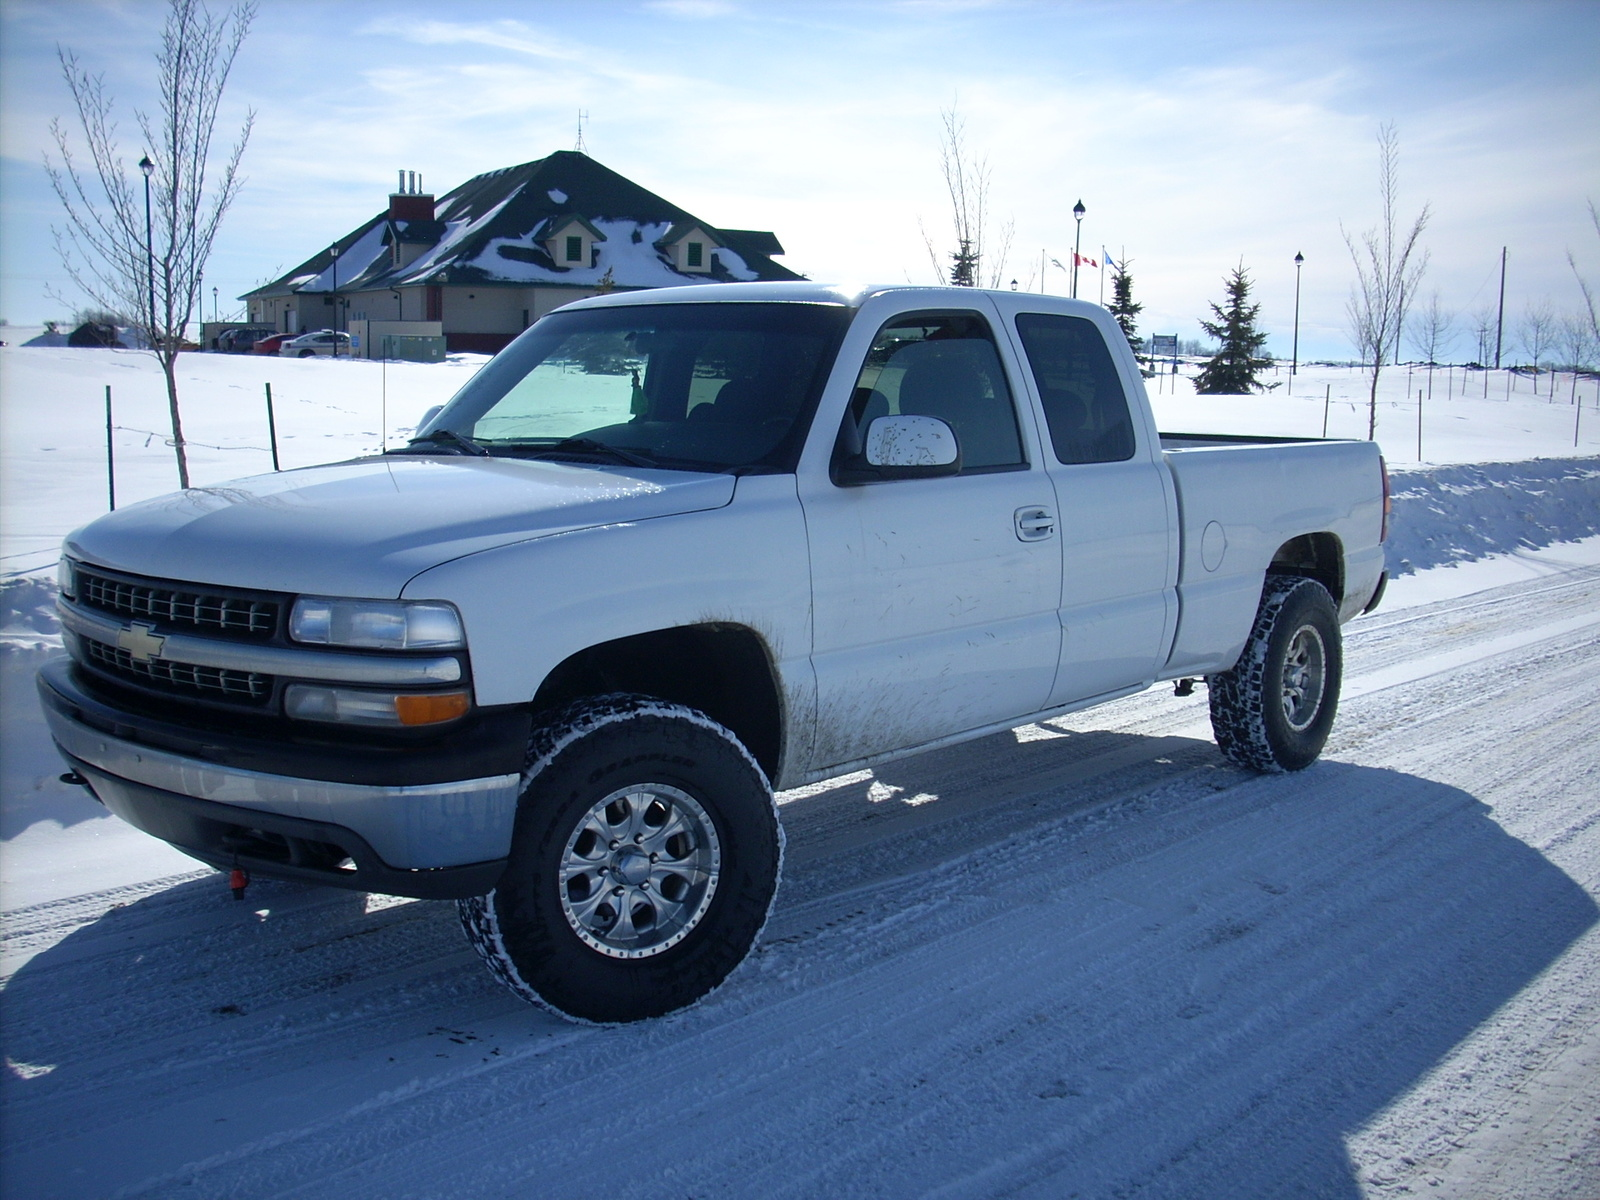 2002 gmc sierra 1500hd information and photos zombiedrive. Black Bedroom Furniture Sets. Home Design Ideas